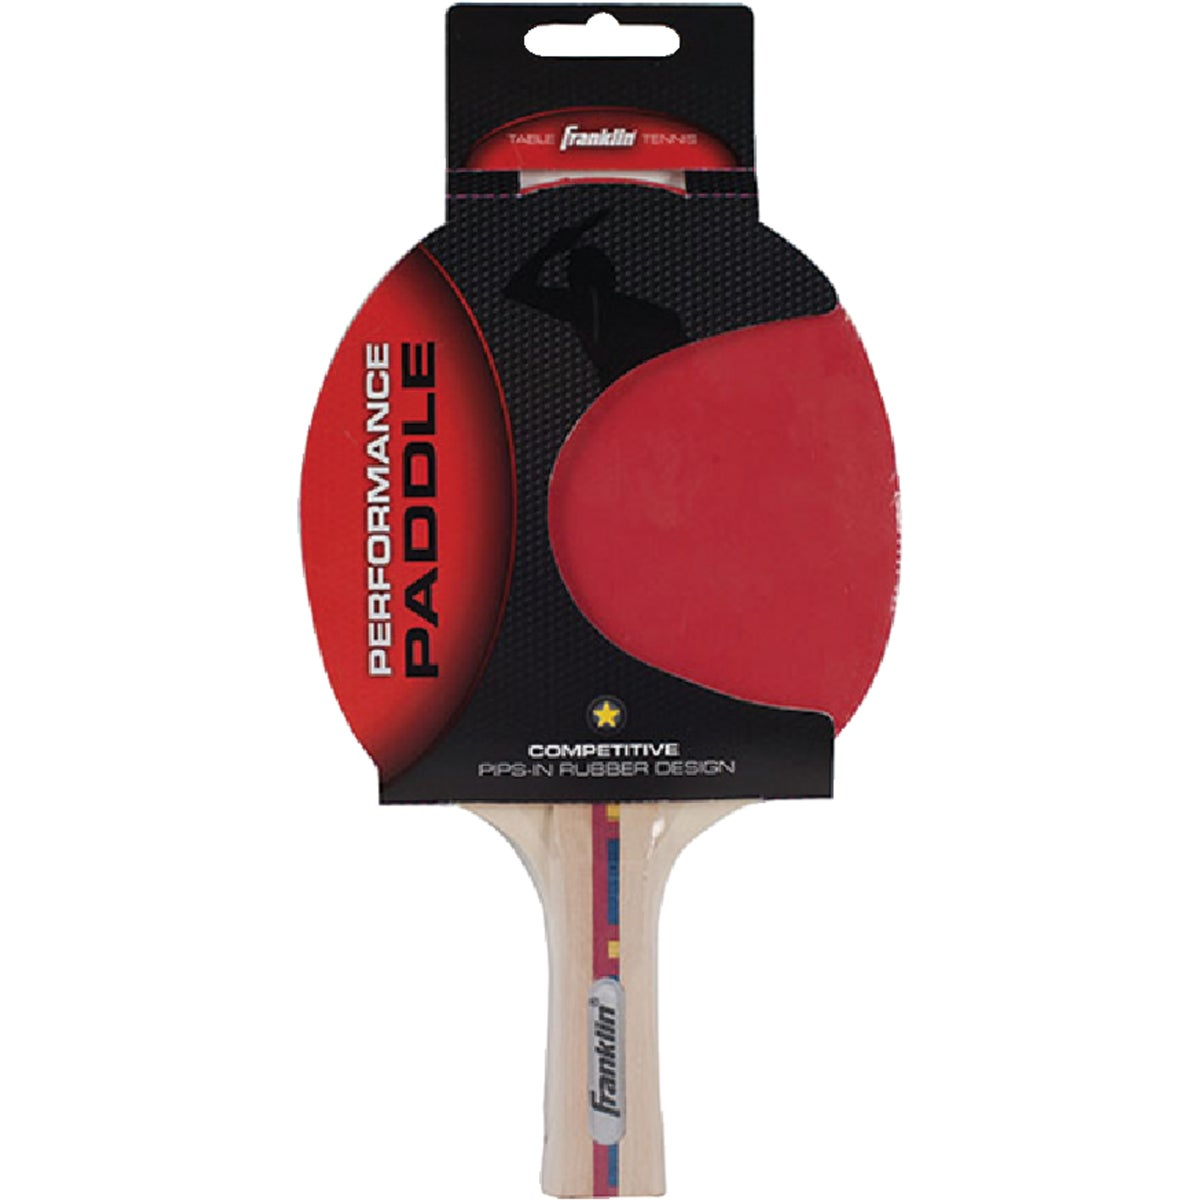 DELX TABLE TENNIS PADDLE - 2204 by Franklin Sports